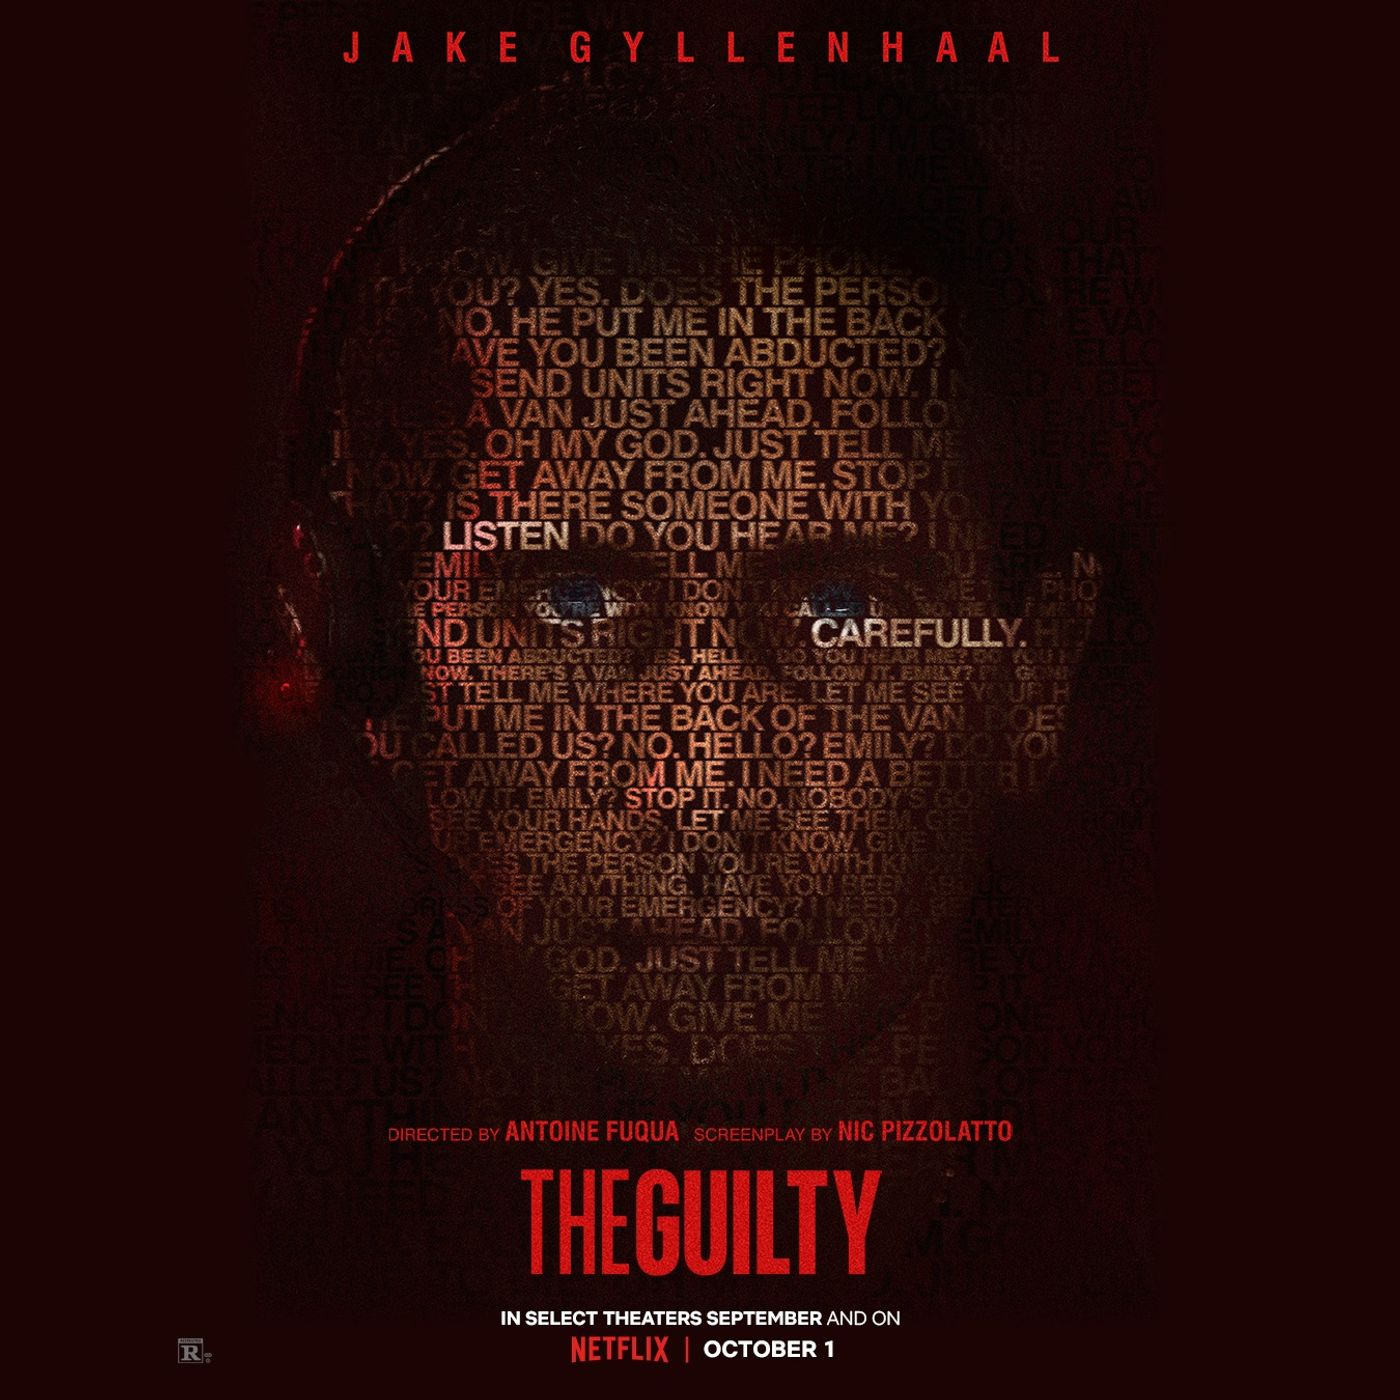 Exclusive Audio Trailer: The Guilty